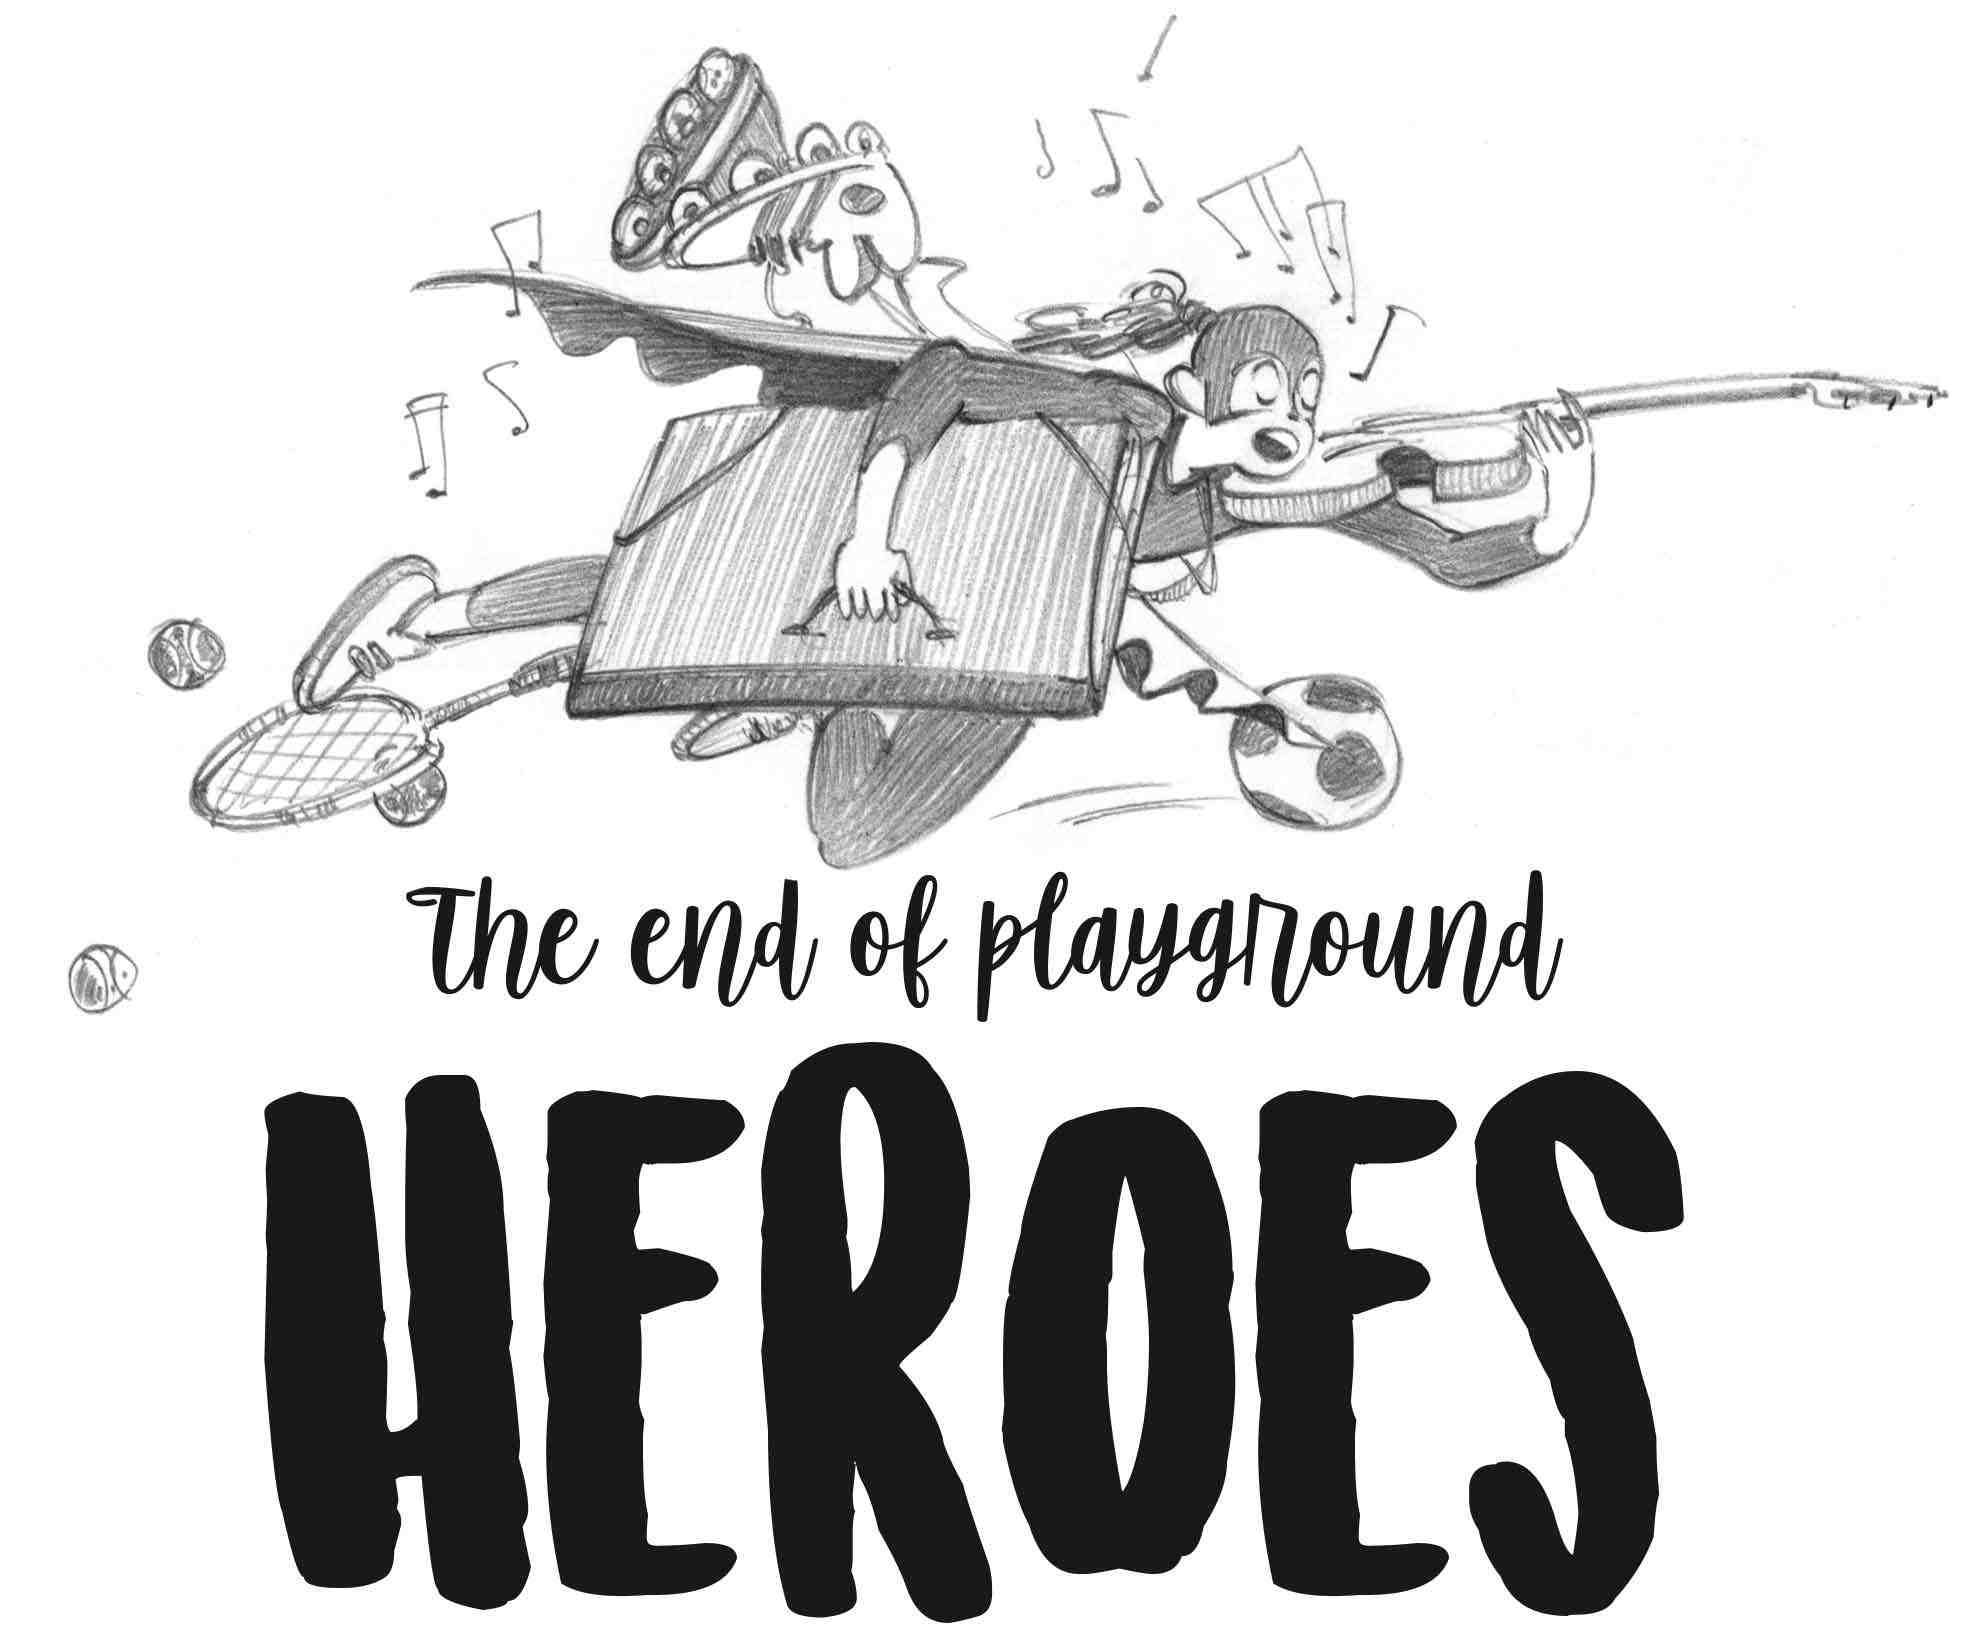 The End of Playground Heroes